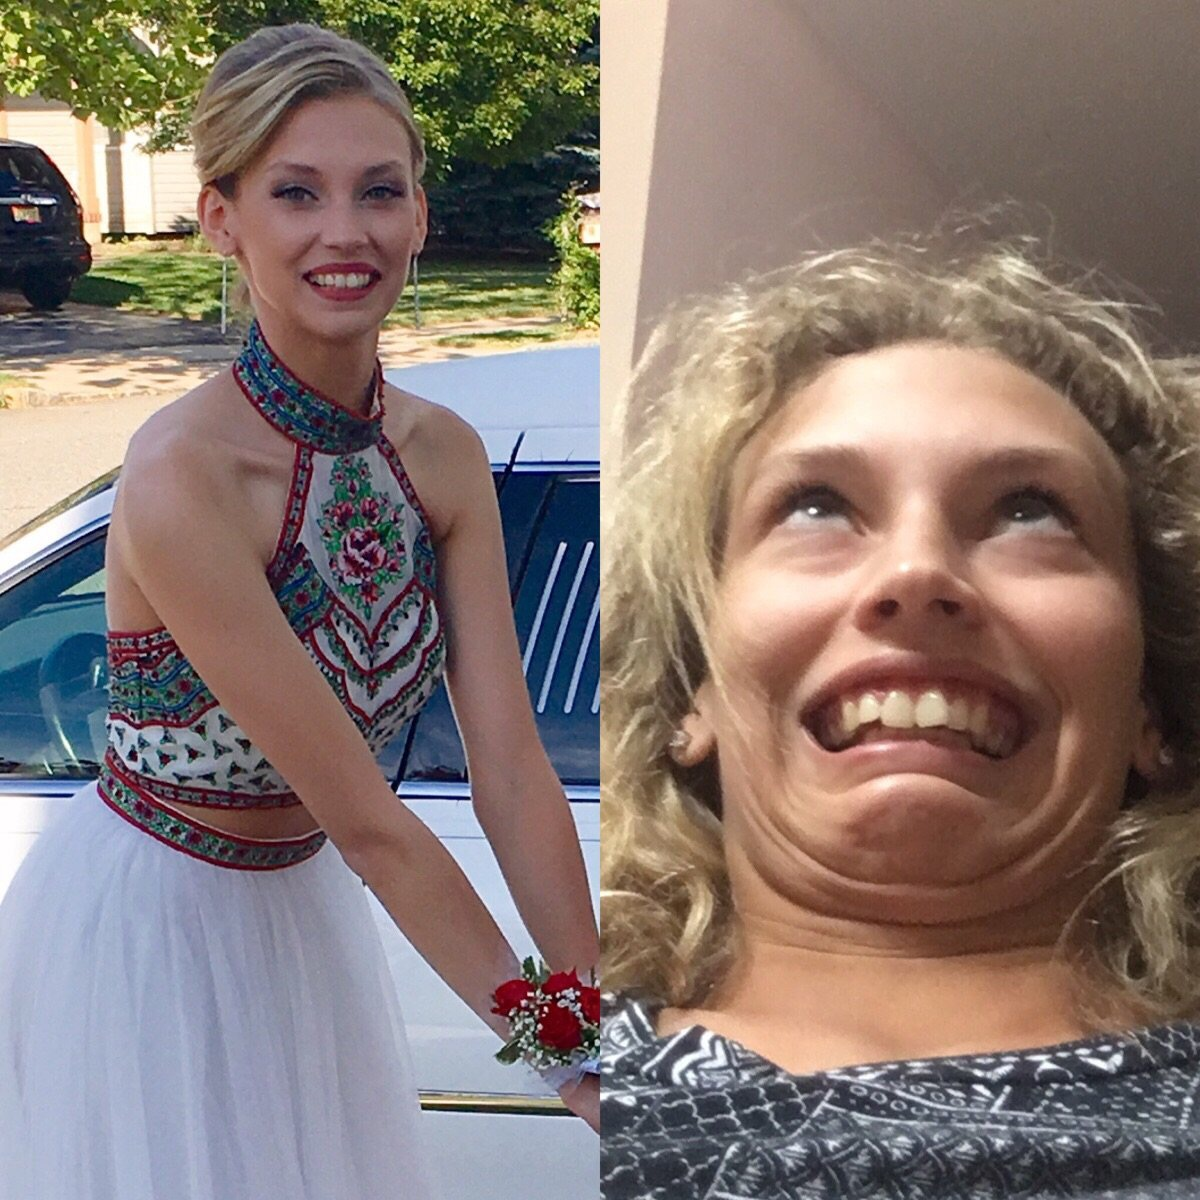 Why Do Pretty Girls Like Making Ugly Faces? - Gallery